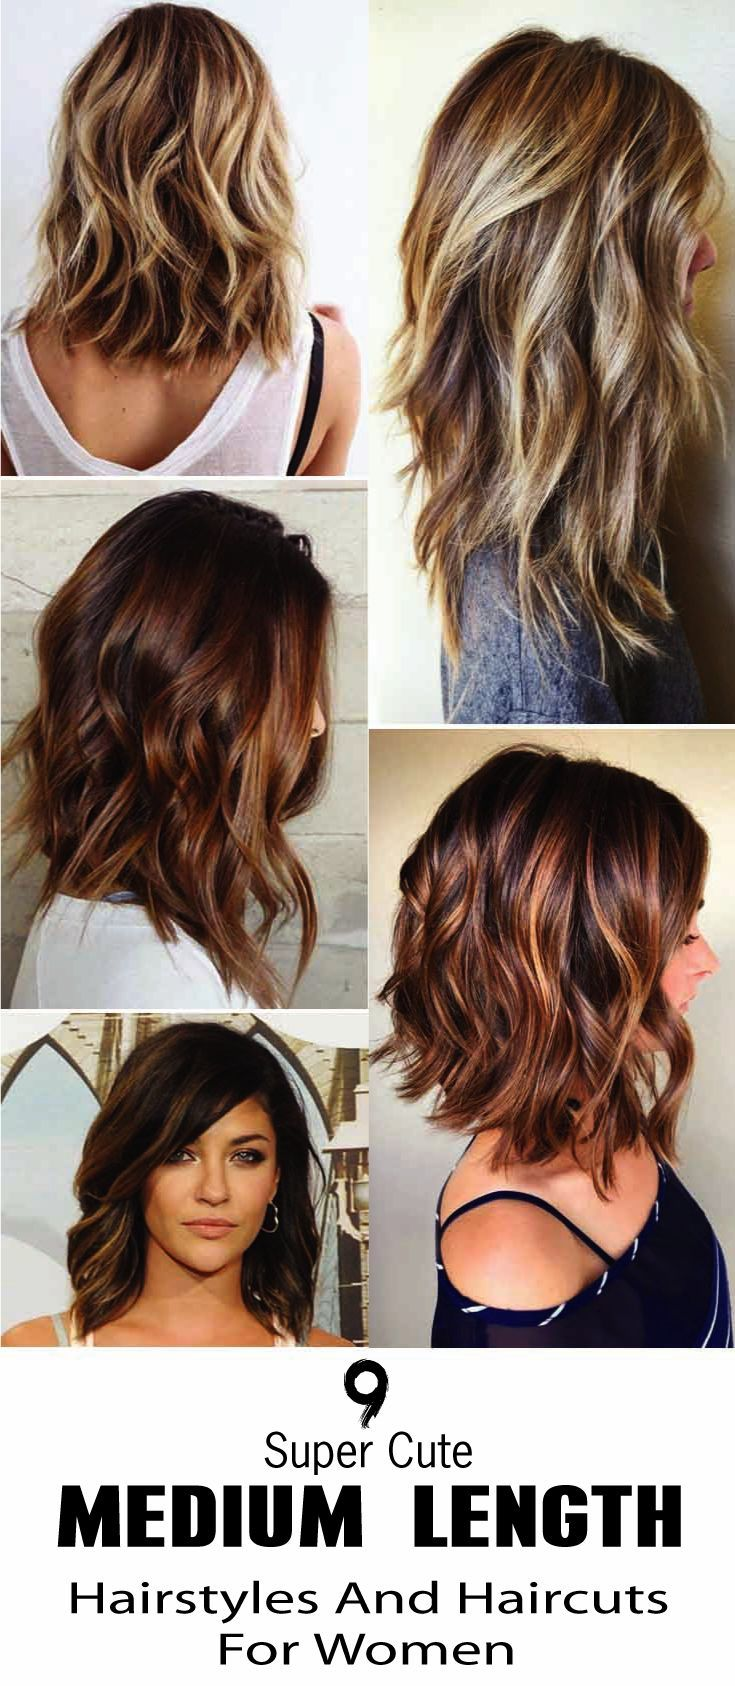 super cute medium length hairstyles and haircuts for women